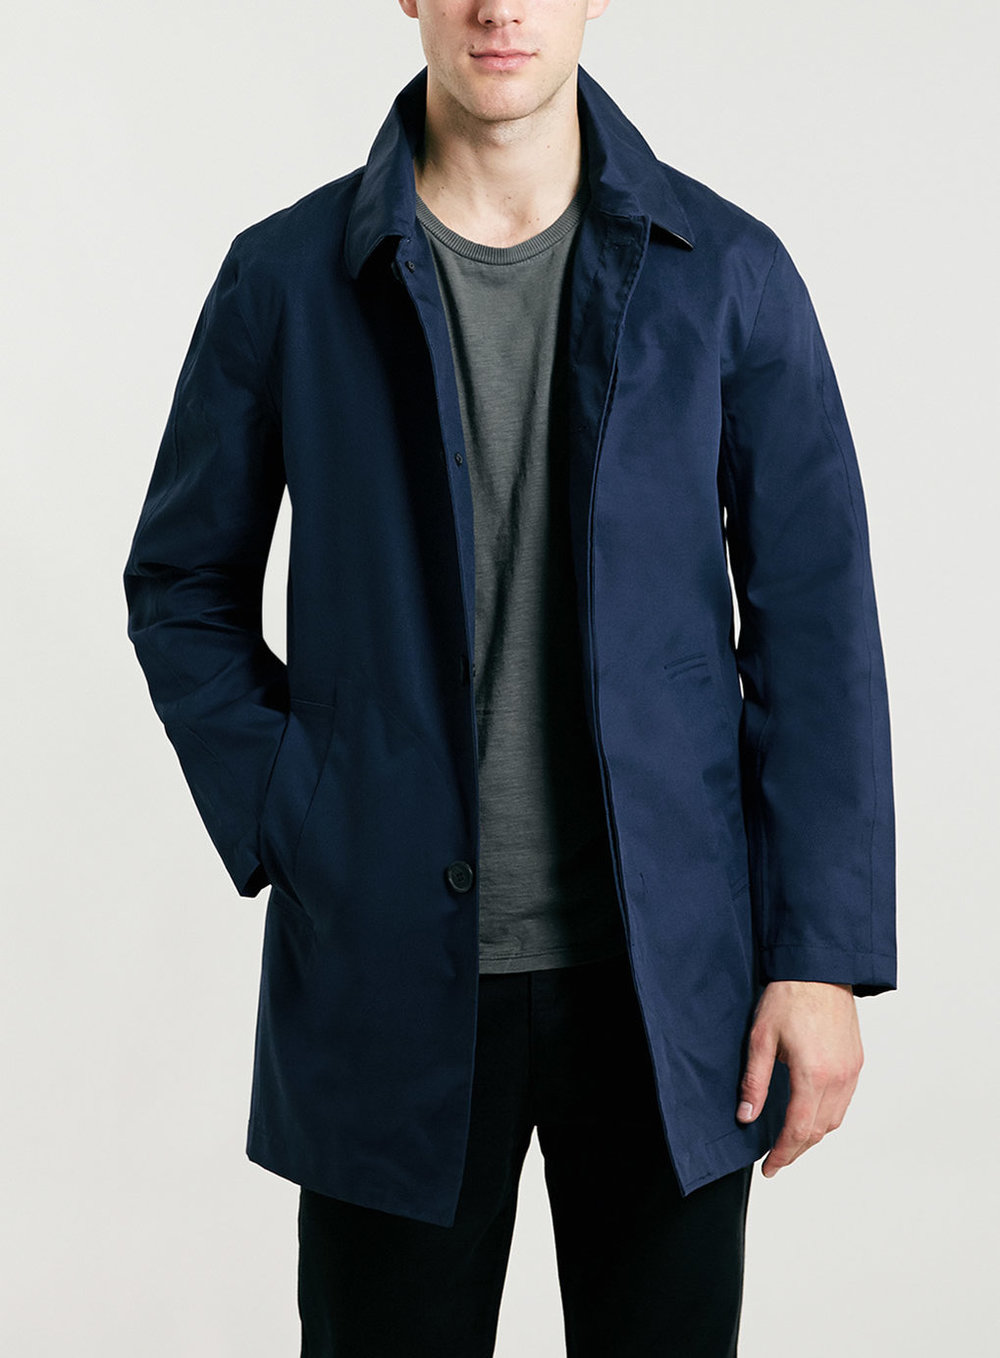 Selected Home Navy Mac,  was $325, now $260